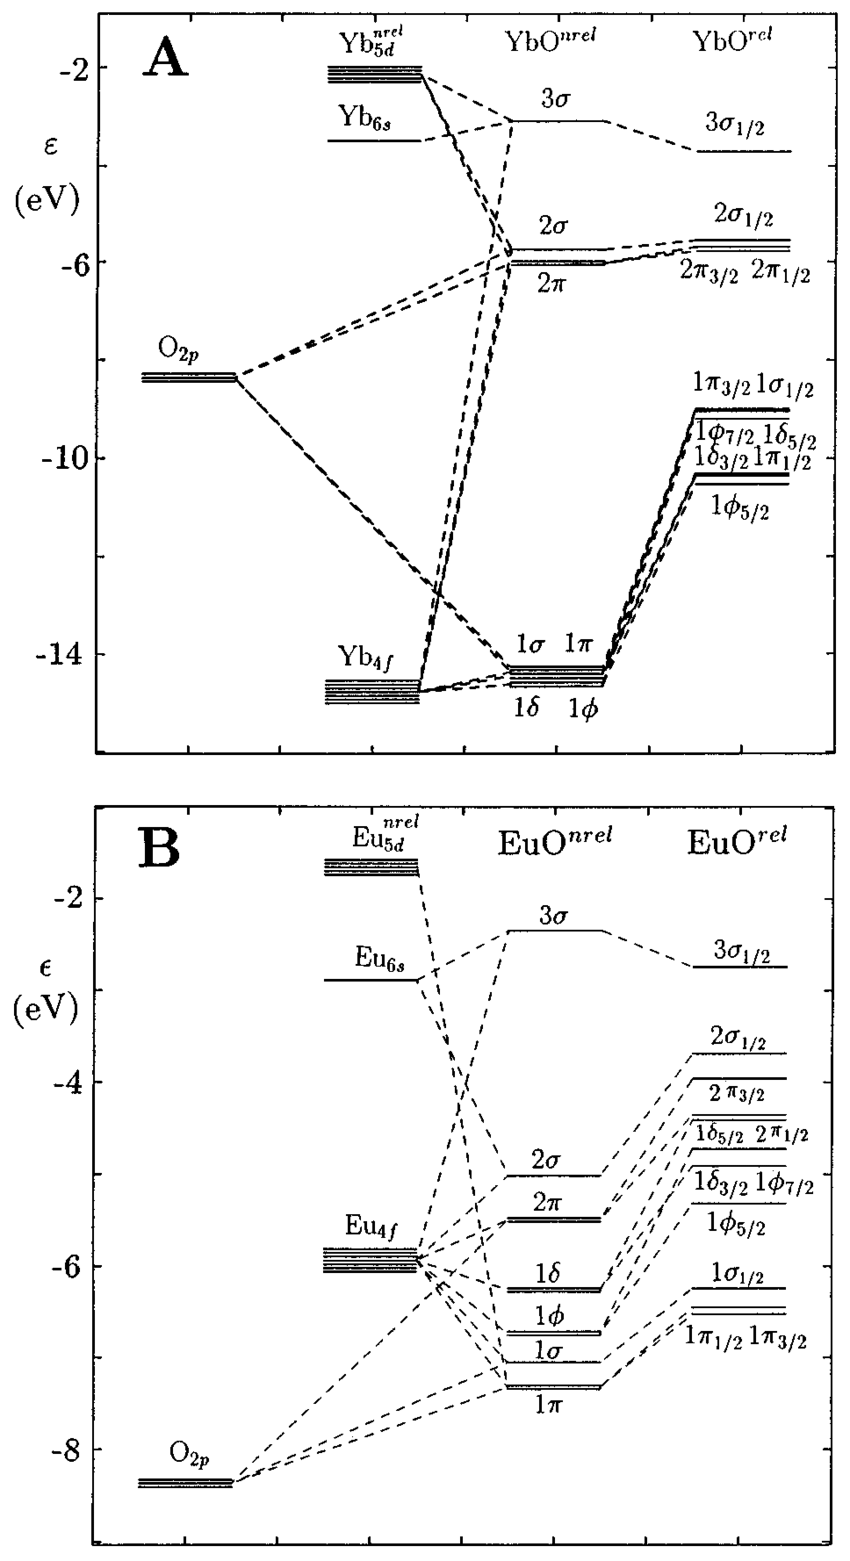 hight resolution of mo level diagrams a yb f 13 1 o and yb f 14 s